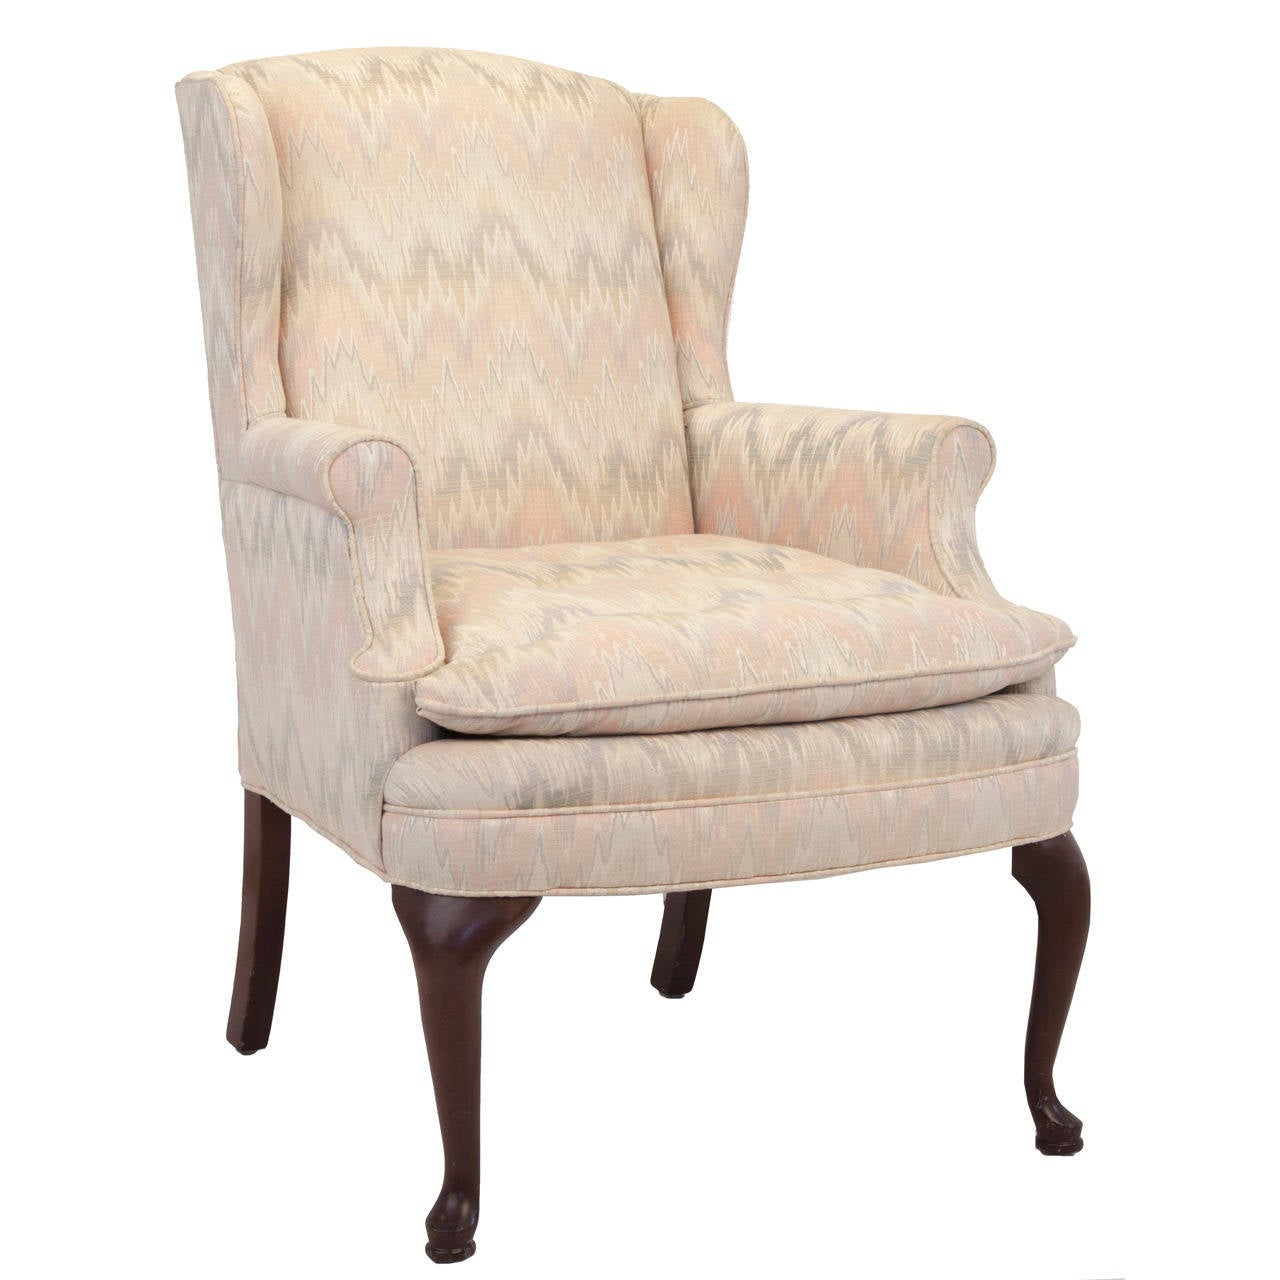 queen anne style upholstered wing chair for sale at 1stdibs On upholstered wing chairs for sale